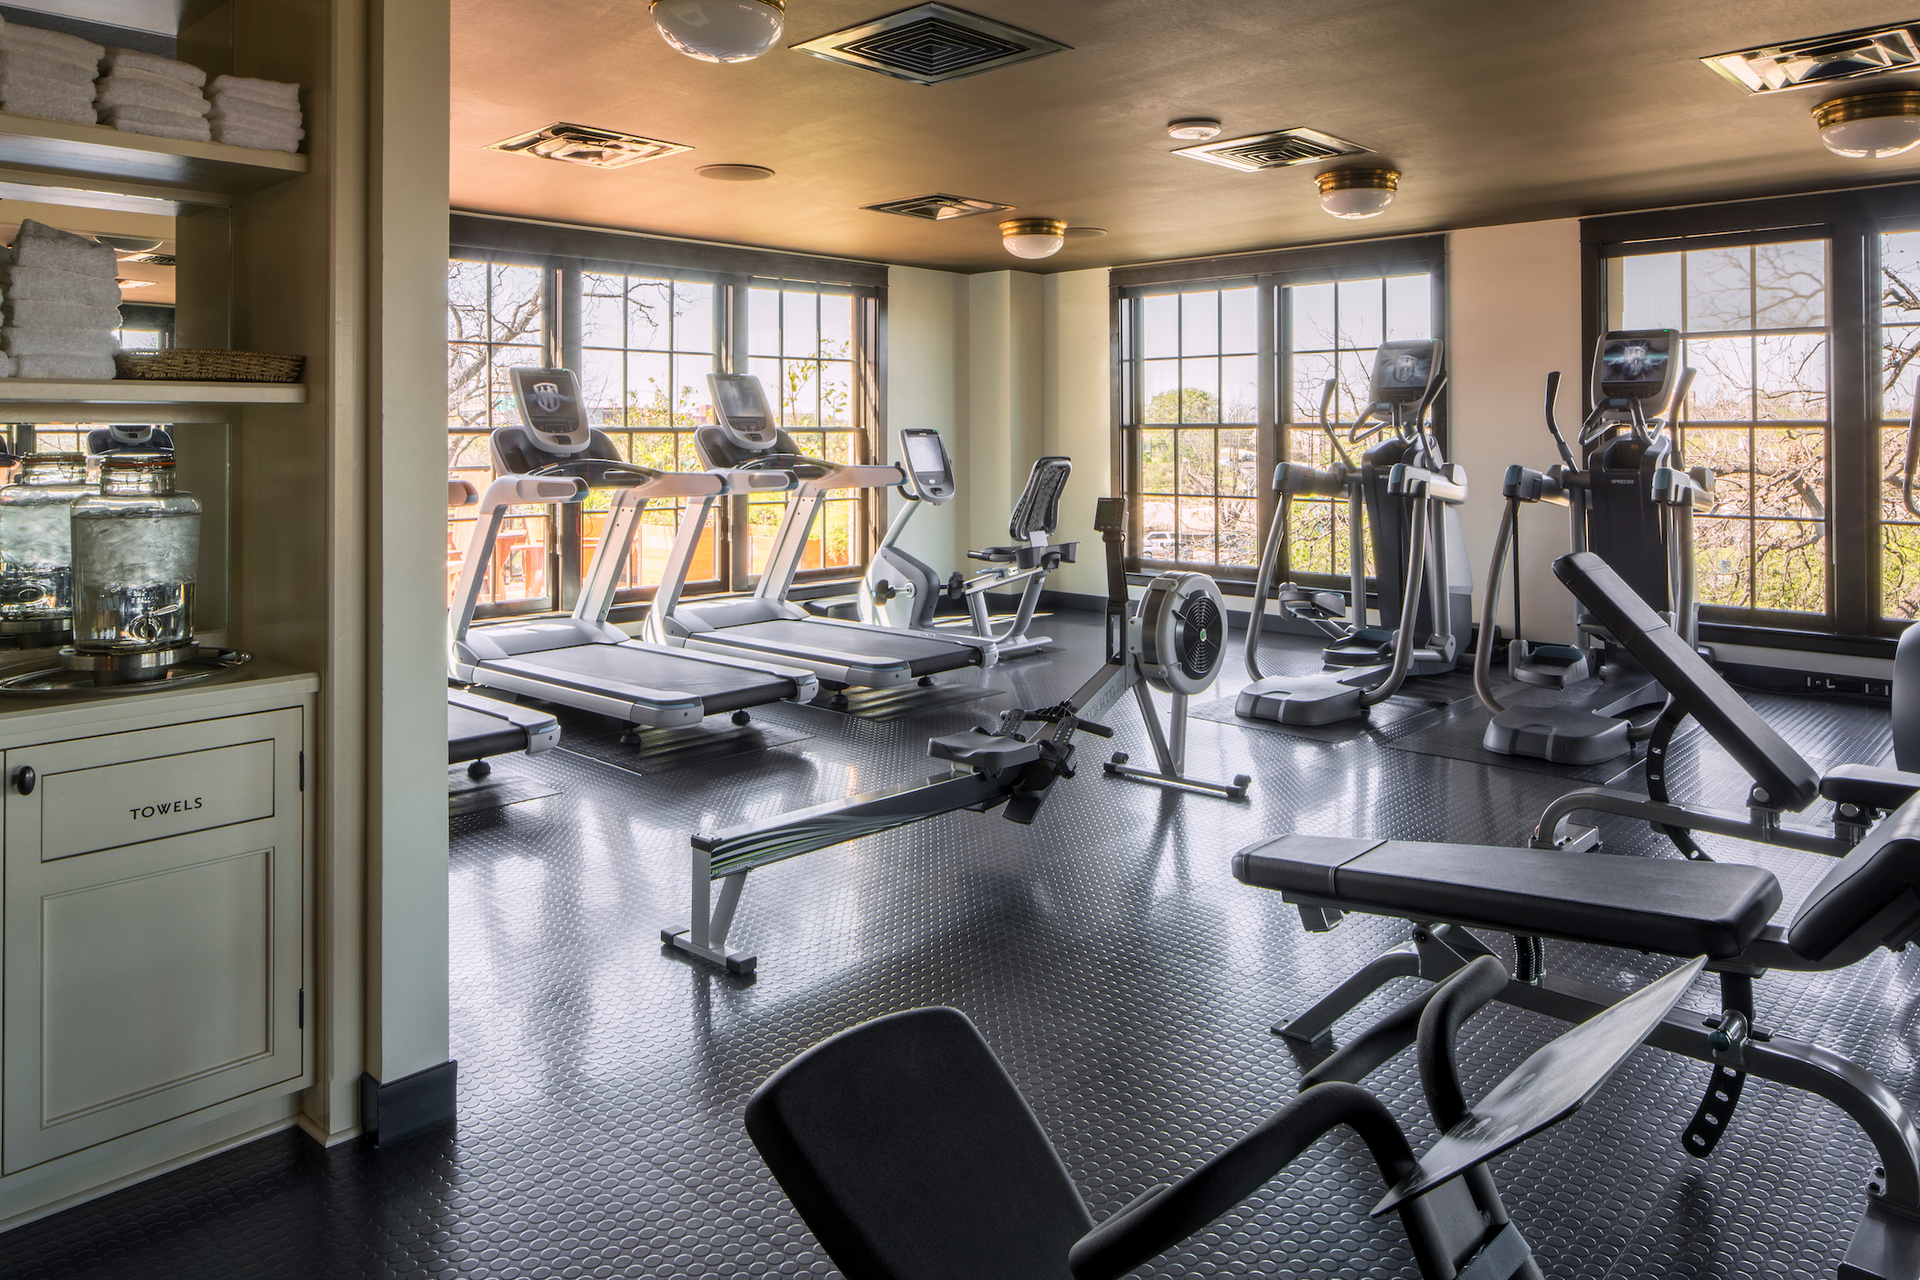 The airy and open-like fitness center at Hotel Emma in San Antonio, TX, featuring double-hung window systems by Pella.